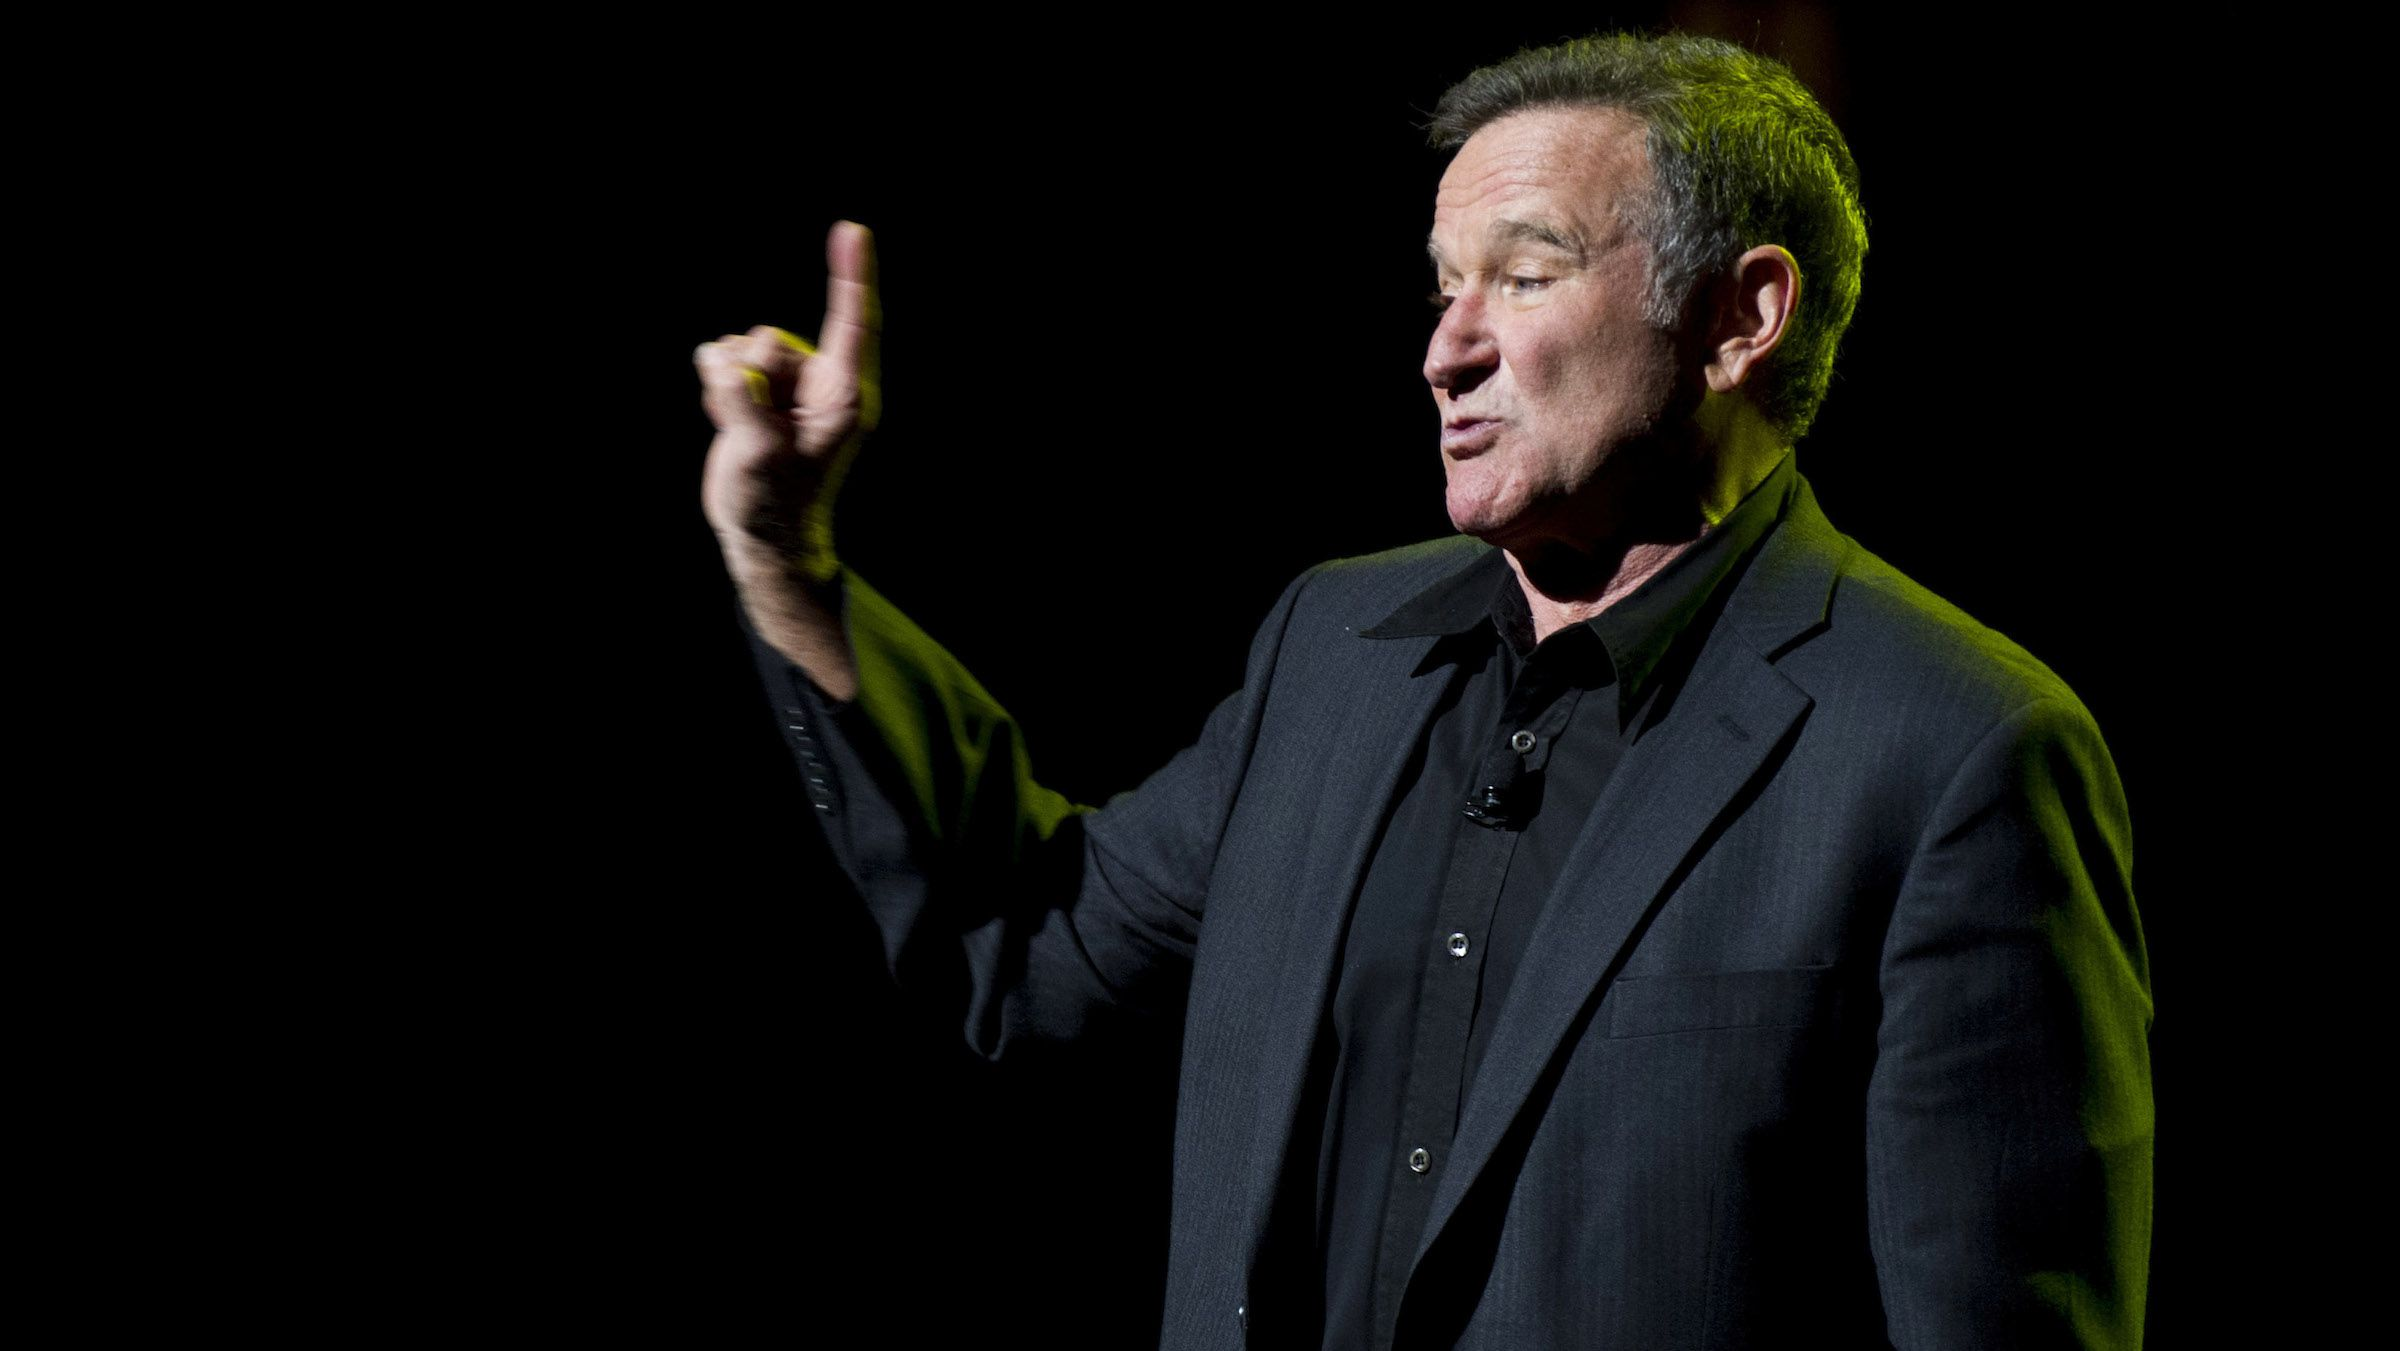 Robin Williams performs at the 6th Annual Stand Up For Heroes benefit concert for injured service members and veterans on Thursday, Nov. 8, 2012 in New York. (Photo by Charles Sykes/Invision/AP)